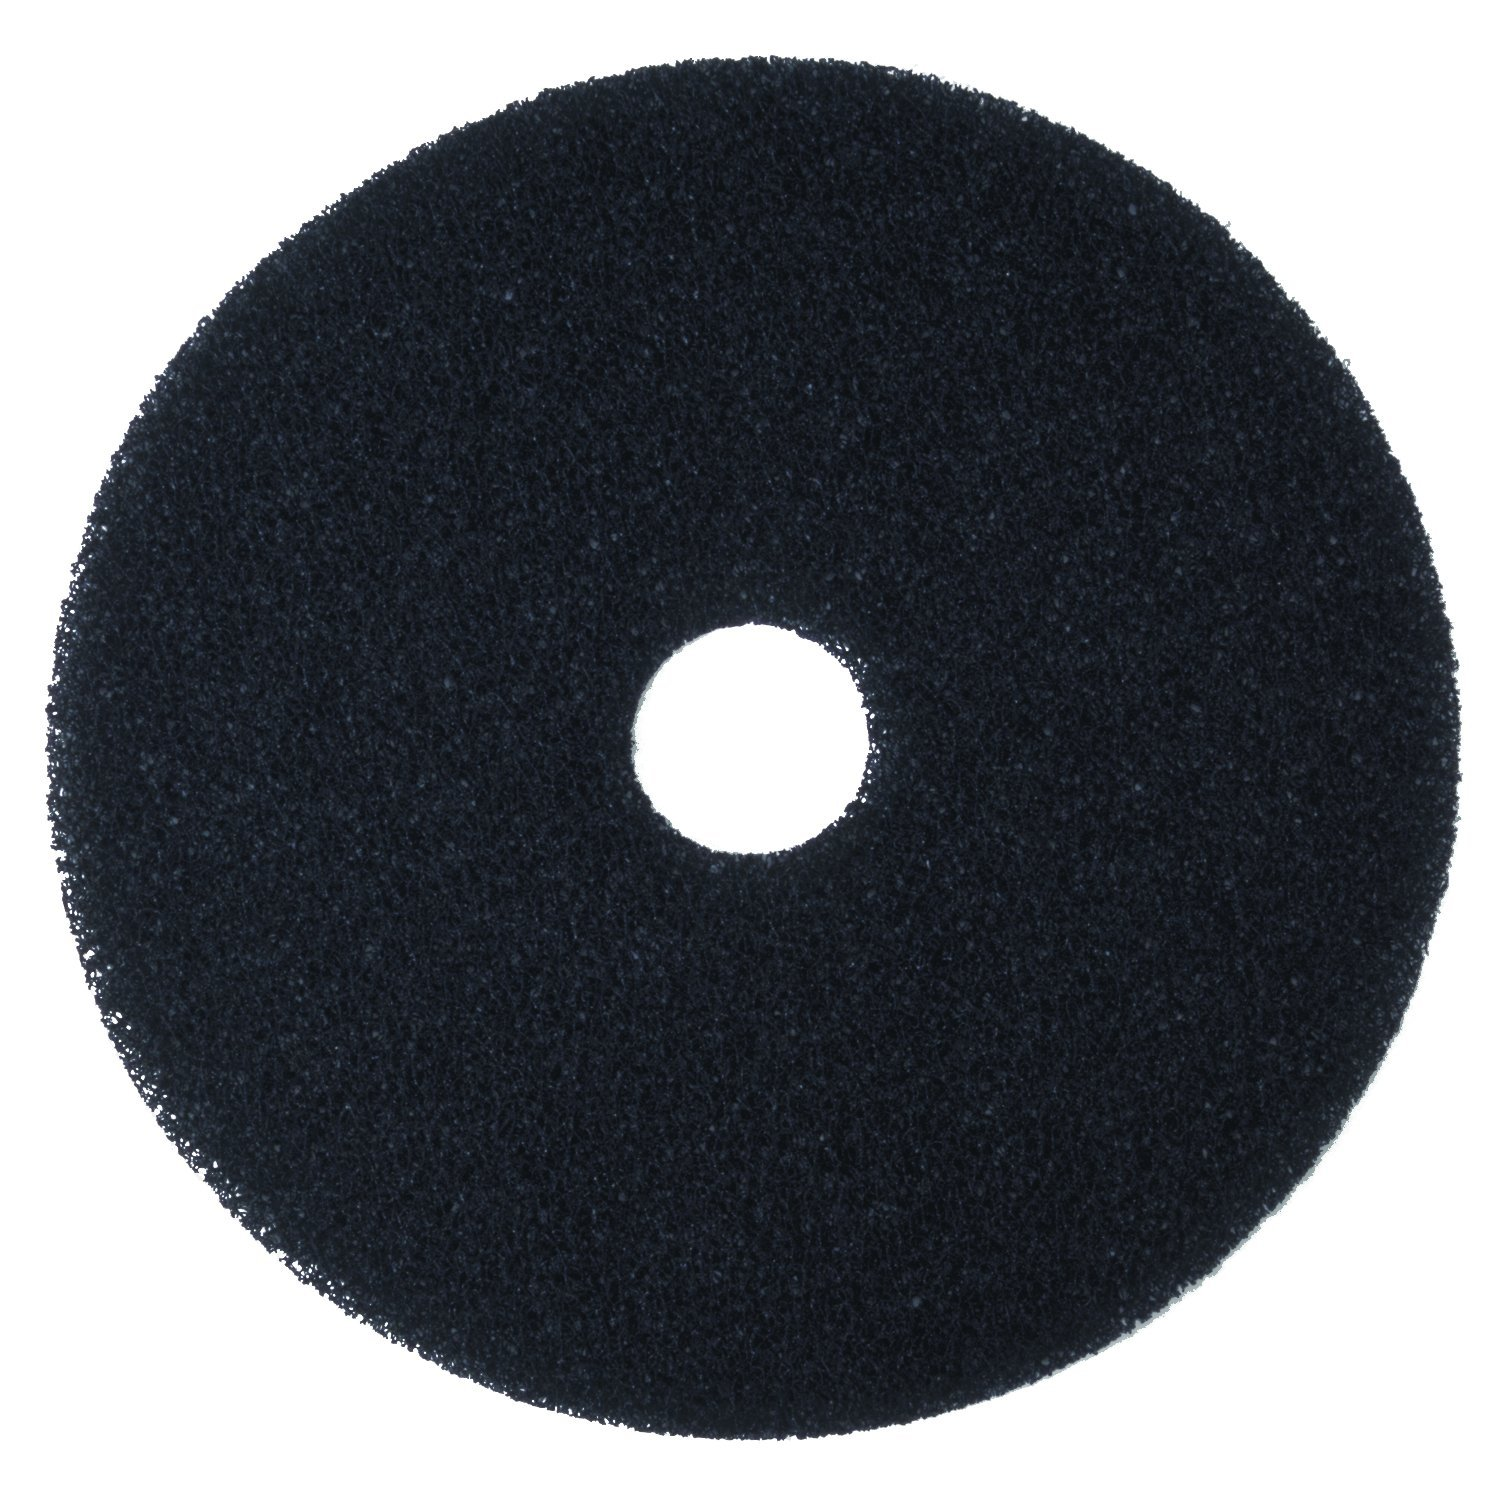 3M Black Stripper Pad 7200, 16'' Floor Care Pad (Case of 5) by 3M (Image #1)